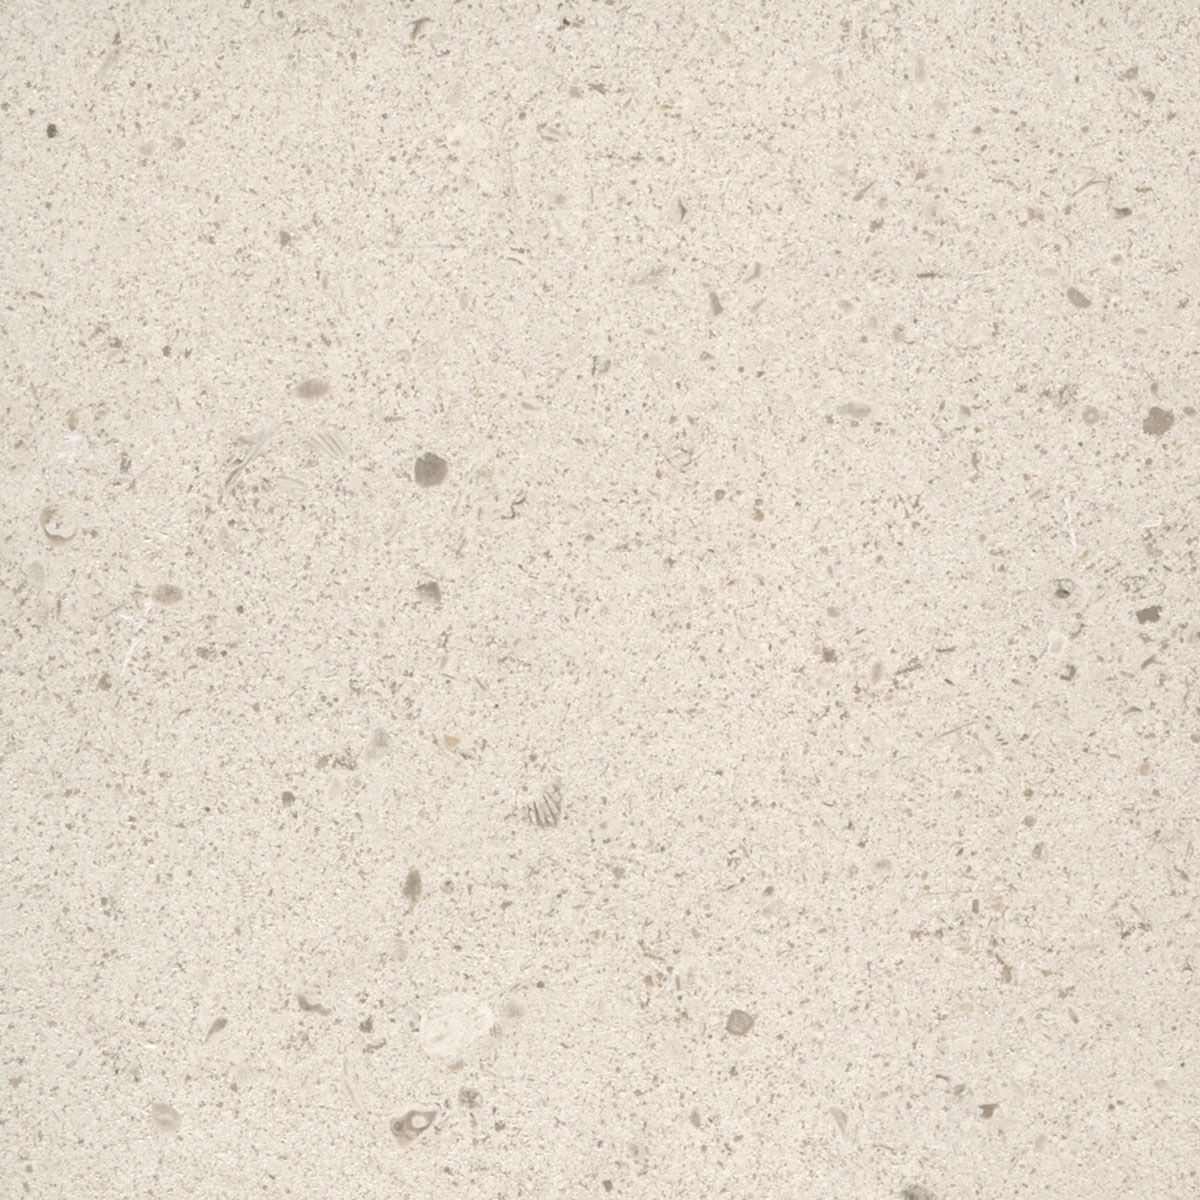 light beige terrazzo google search material textures